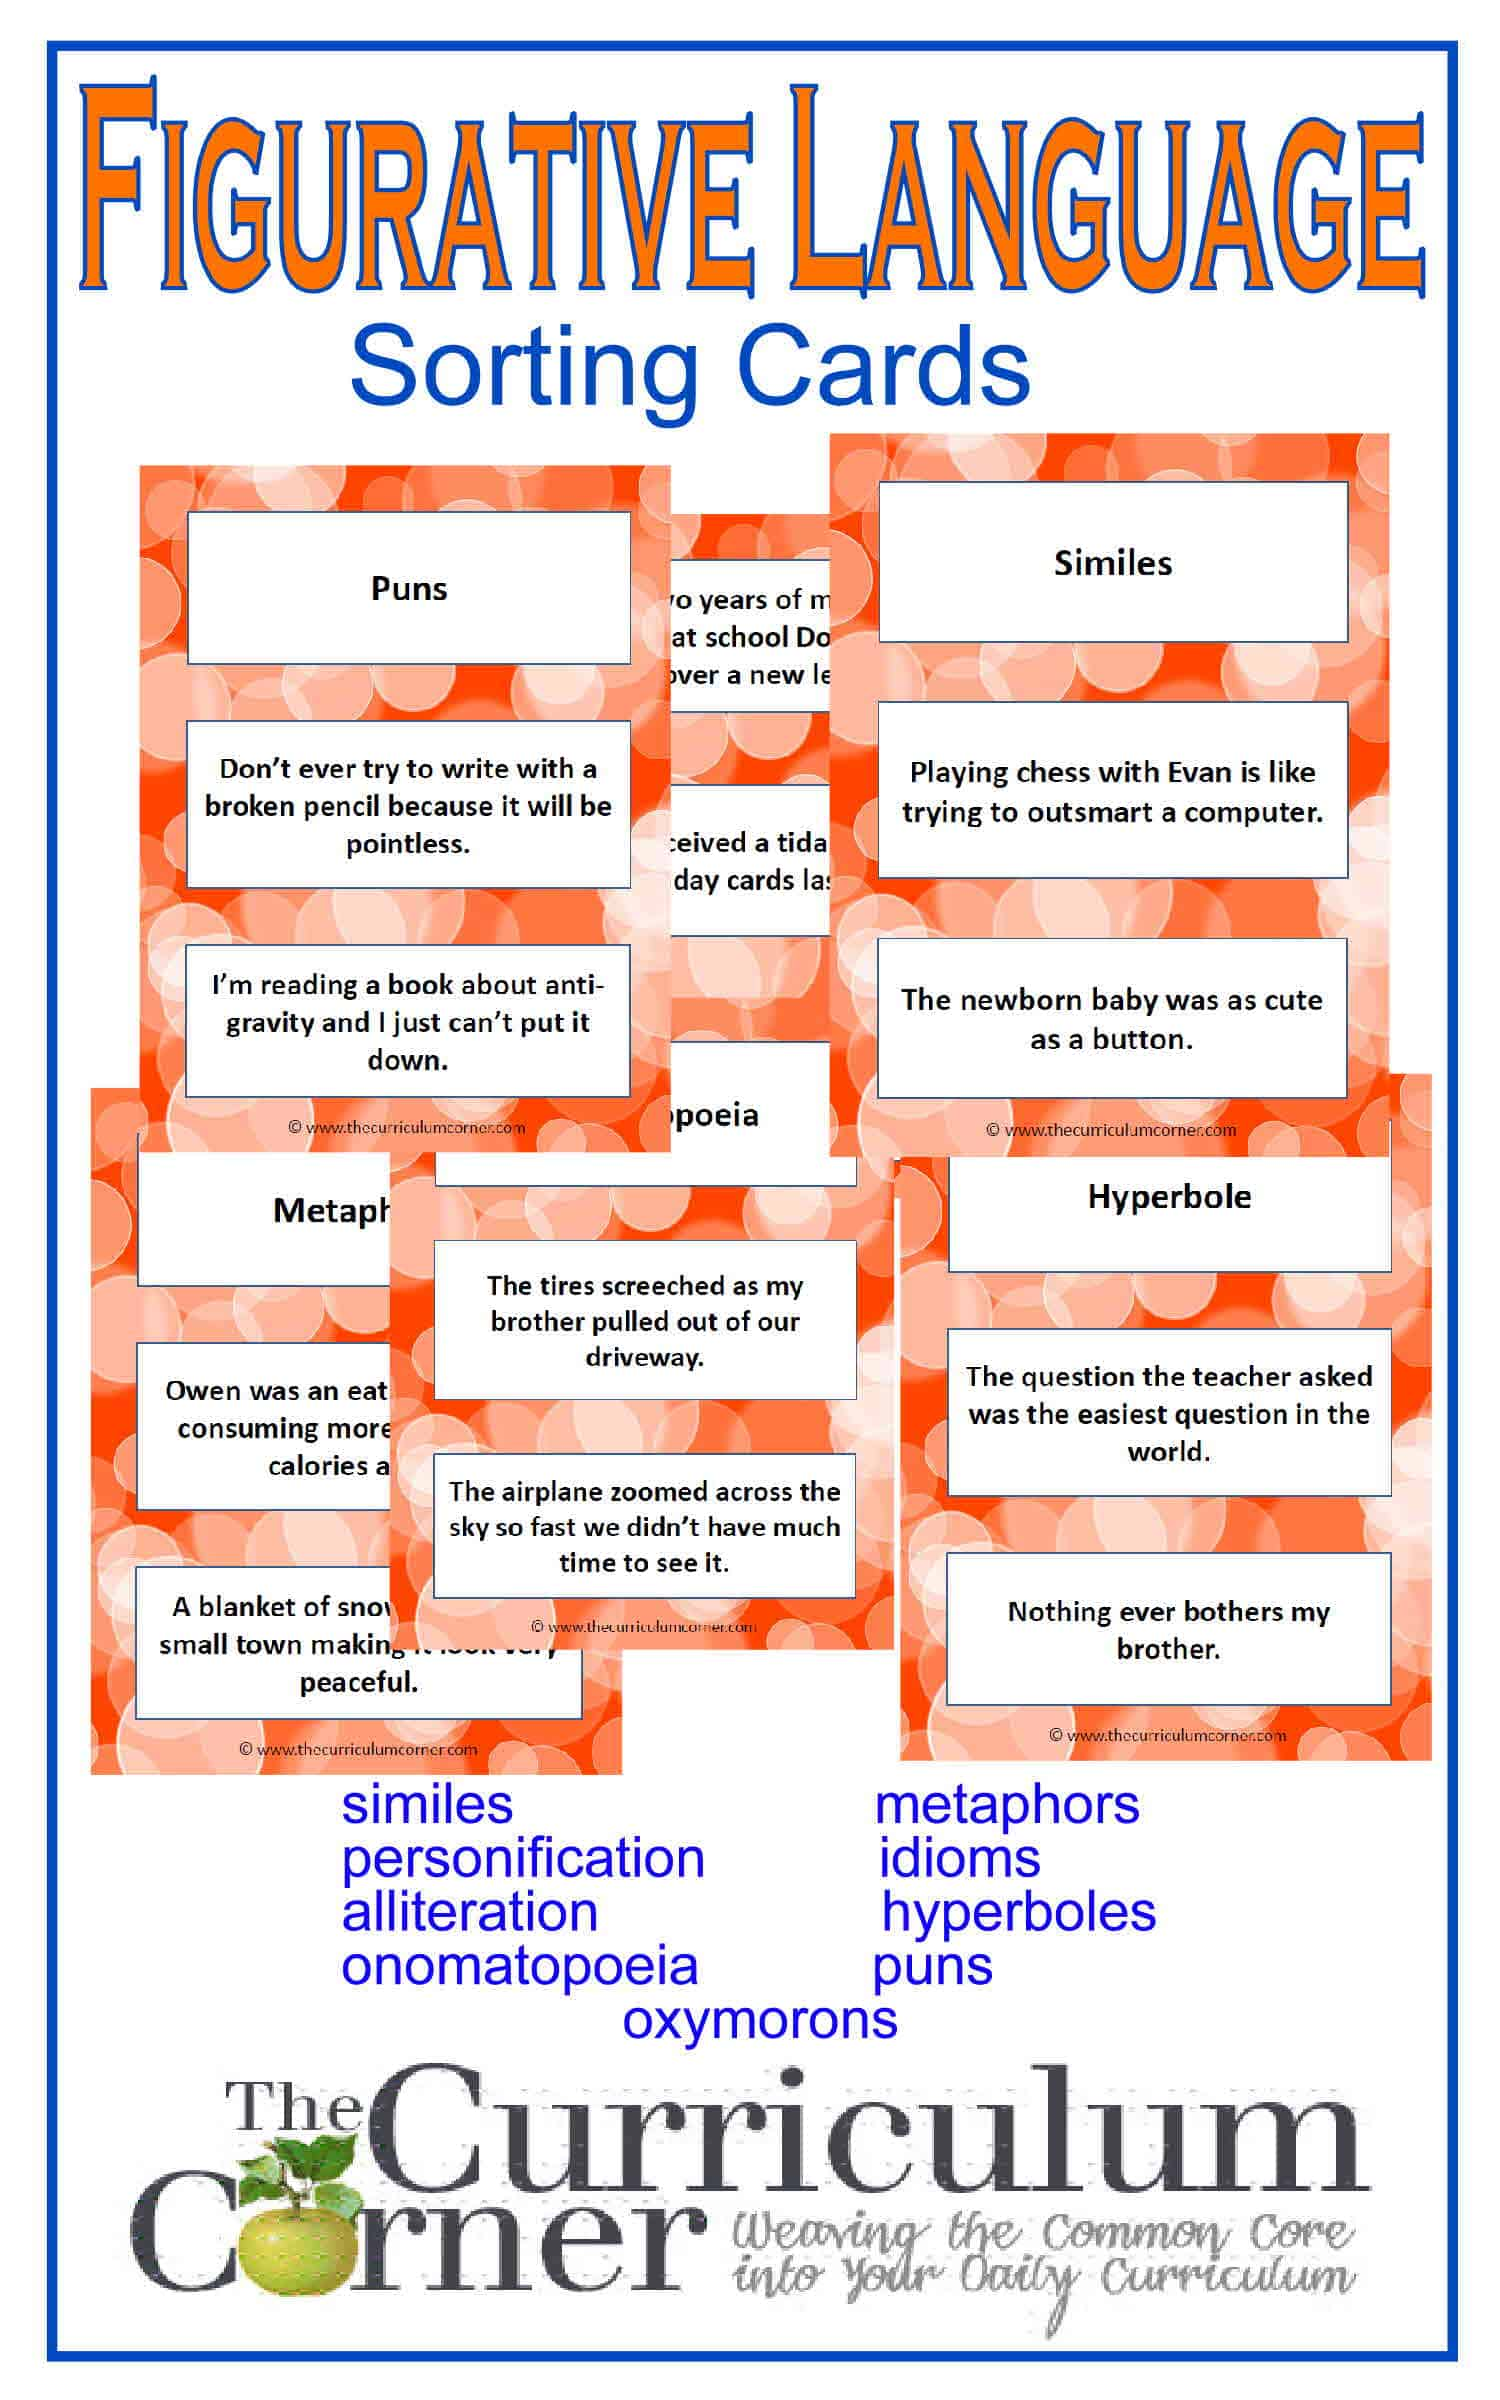 Figurative Language Cards The Curriculum Corner 4 5 6